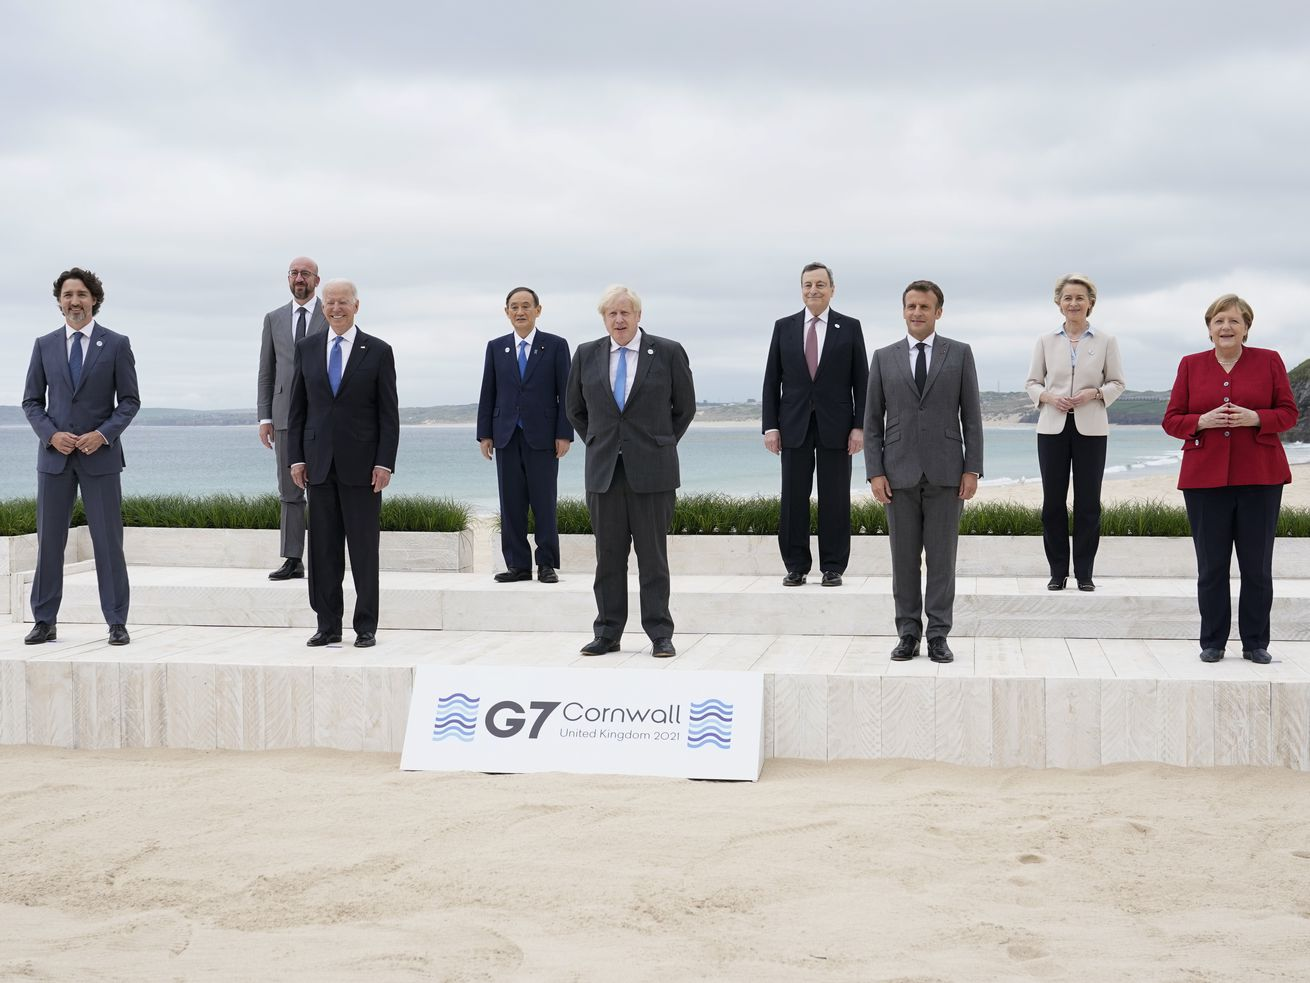 Leaders of the G7 pose for a group photo on overlooking the beach at the Carbis Bay Hotel in Carbis Bay, St. Ives, Cornwall, England, Friday. From left, Canadian Prime Minister Justin Trudeau, European Council President Charles Michel, U.S. President Joe Biden, Japan's Prime Minister Yoshihide Suga, British Prime Minister Boris Johnson, Italy's Prime Minister Mario Draghi, French President Emmanuel Macron, European Commission President Ursula von der Leyen and German Chancellor Angela Merkel.